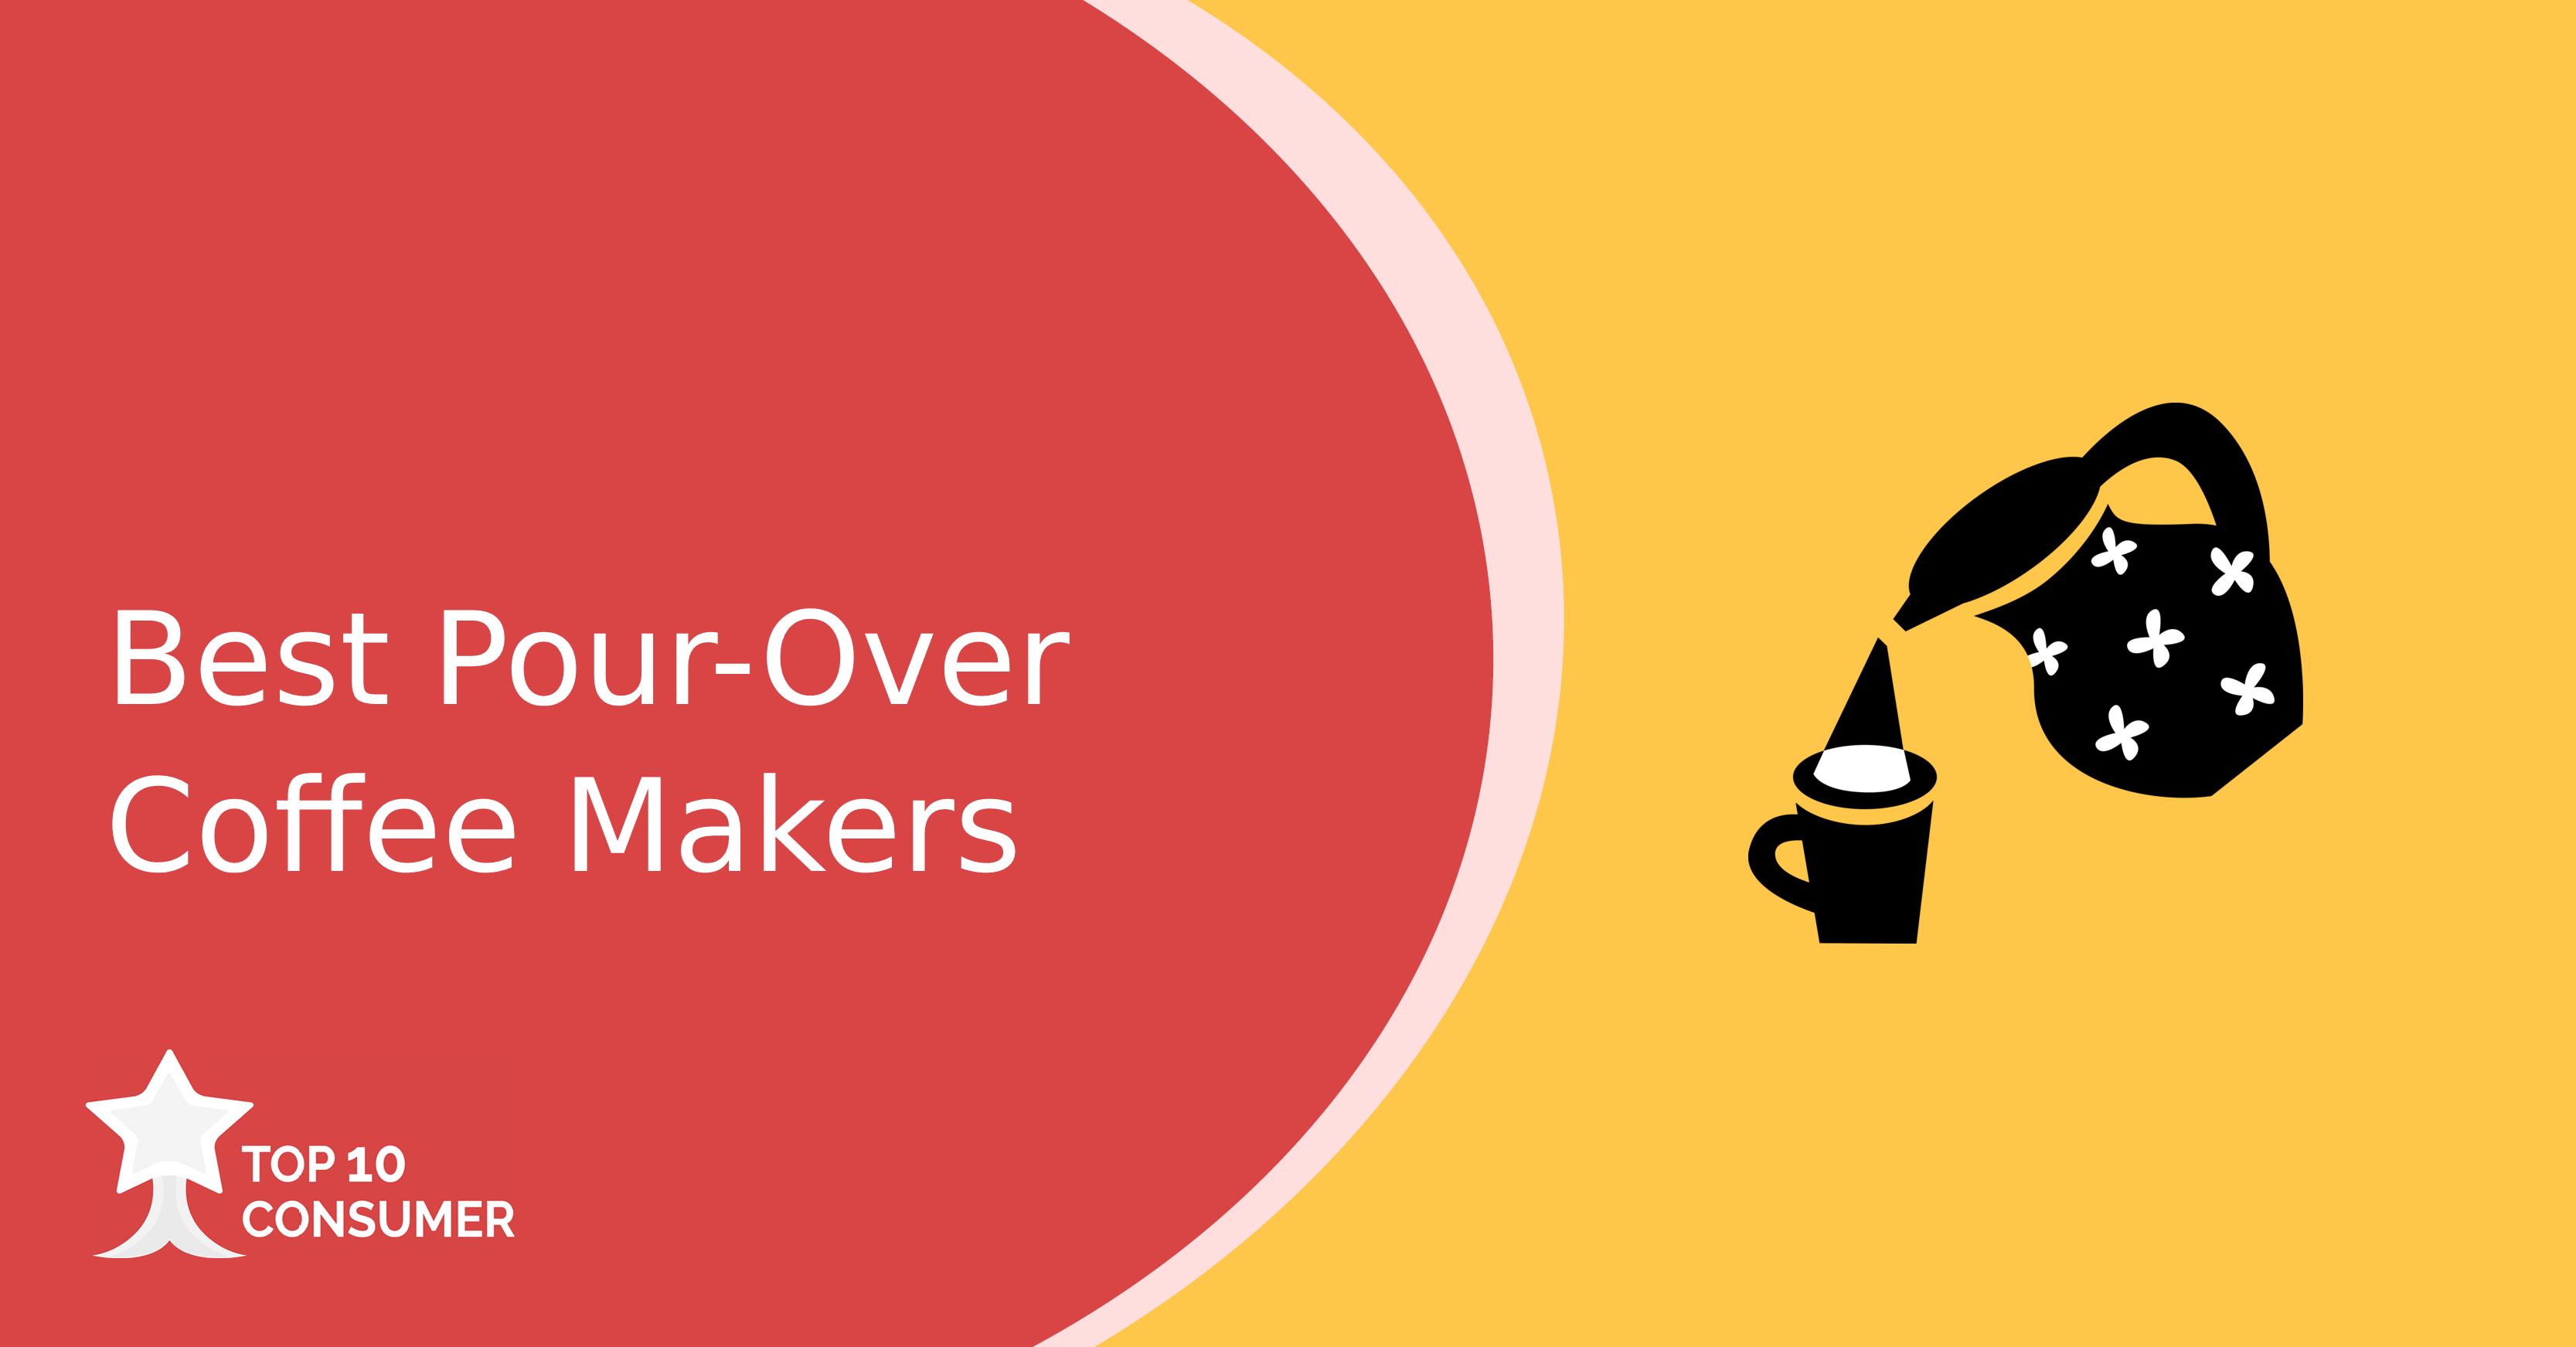 Best Pour-Over Coffee Makers